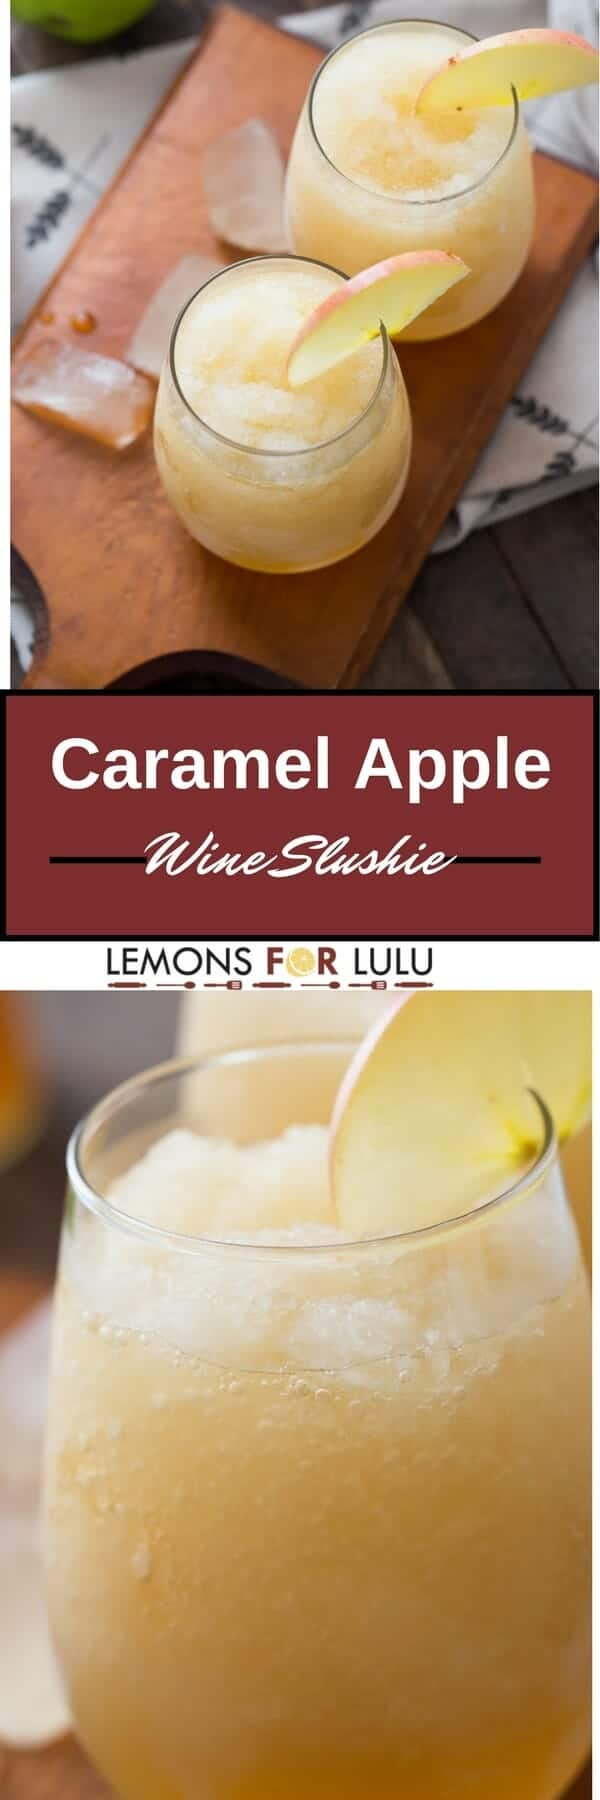 Apple cider and pinot Grigio make one delicious cocktail! You won't even notice the alcohol, just the sweet caramel taste!